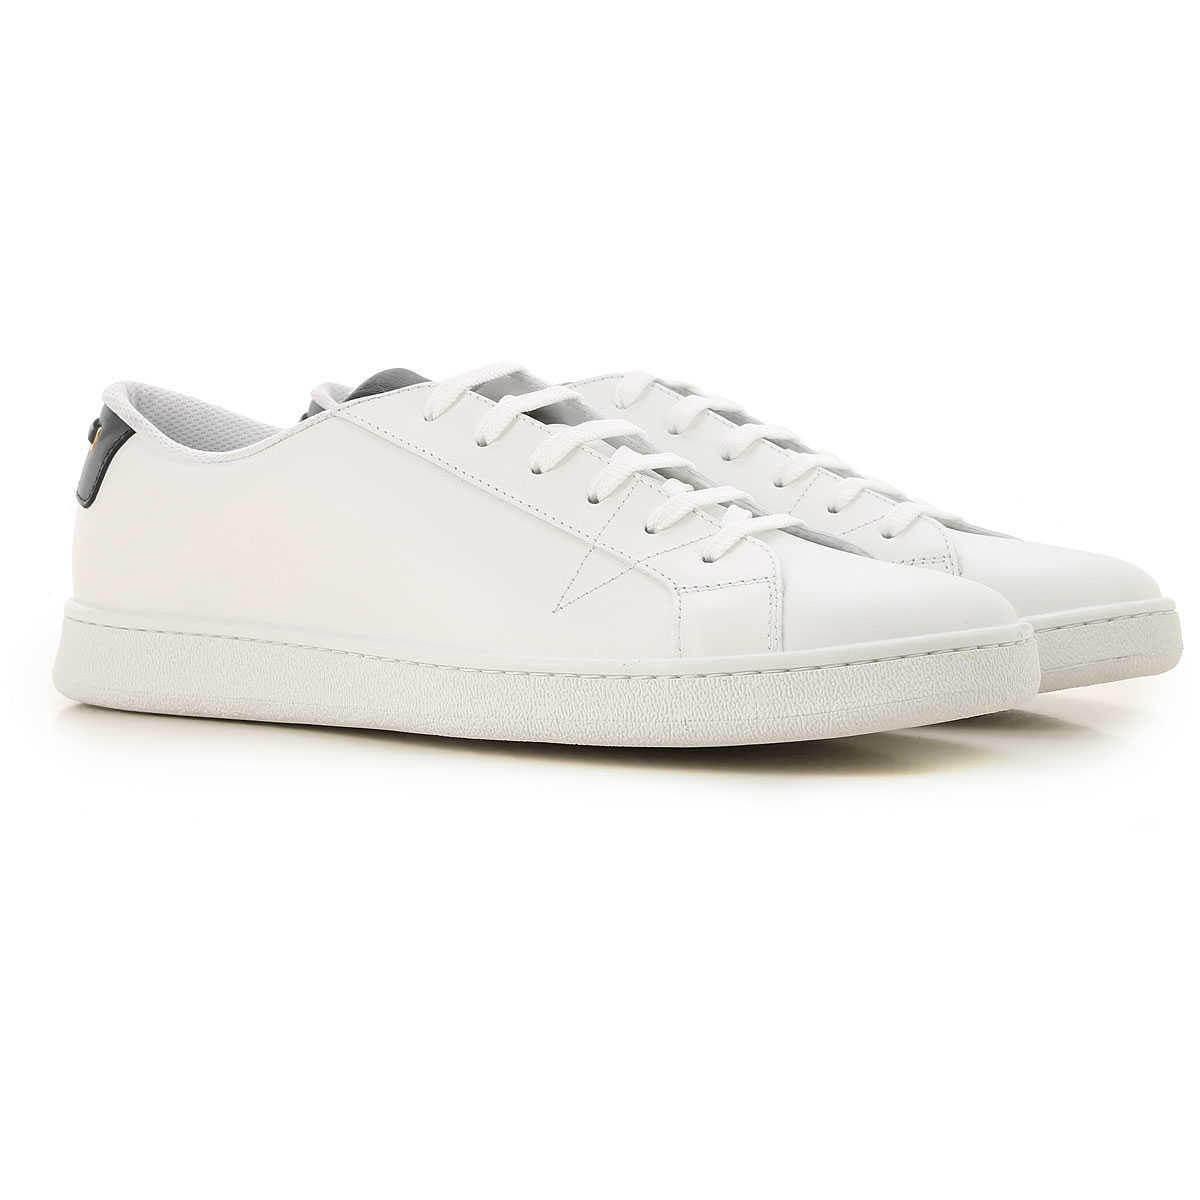 Car Shoe Sneakers for Men On Sale White - GOOFASH